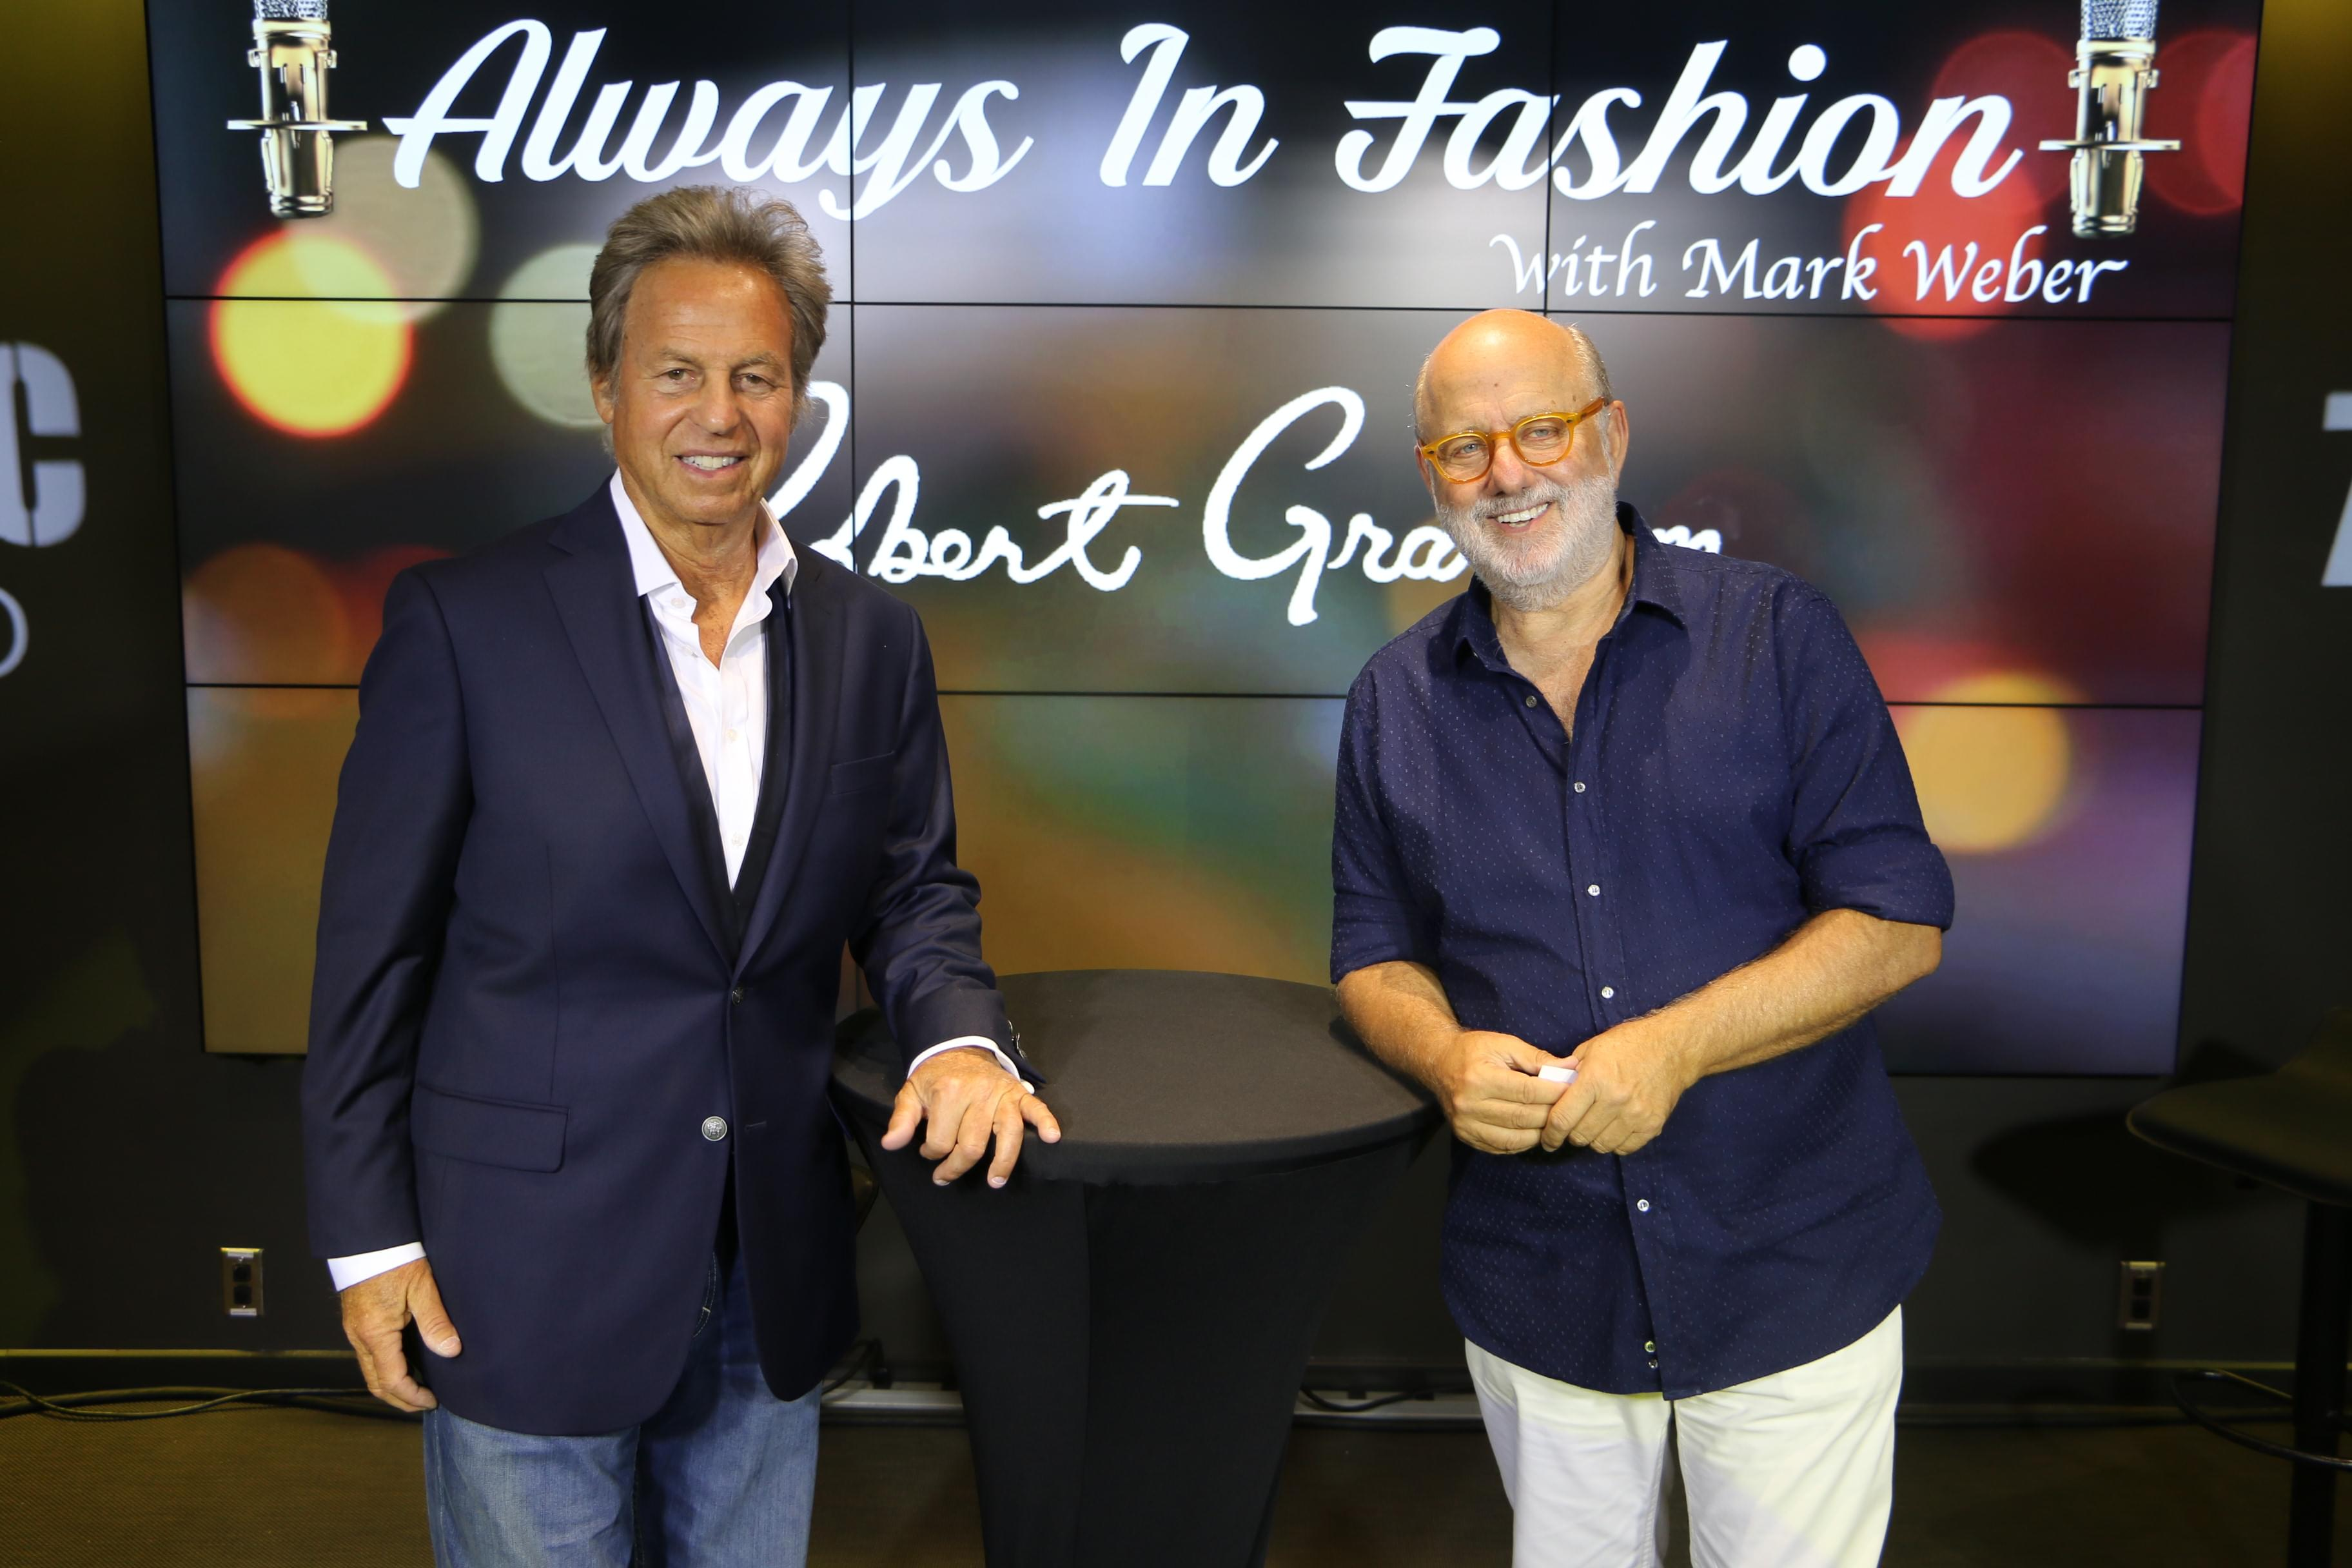 Always in Fashion with Mark Weber featuring Robert Stock! [Exclusive Video]